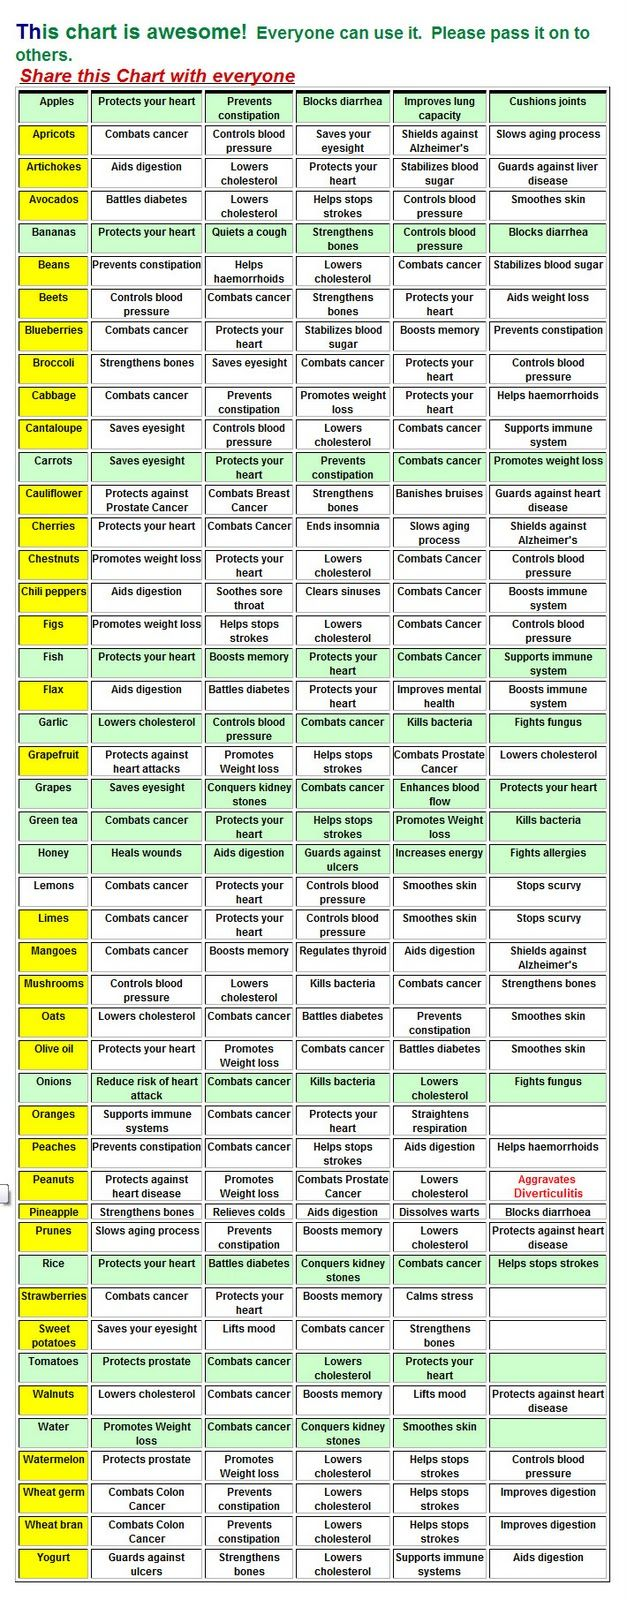 My friend Flux sent me this chart in an email. It lists tons of veggies and their healing/ preventive properties. I'm not a particularly hea...